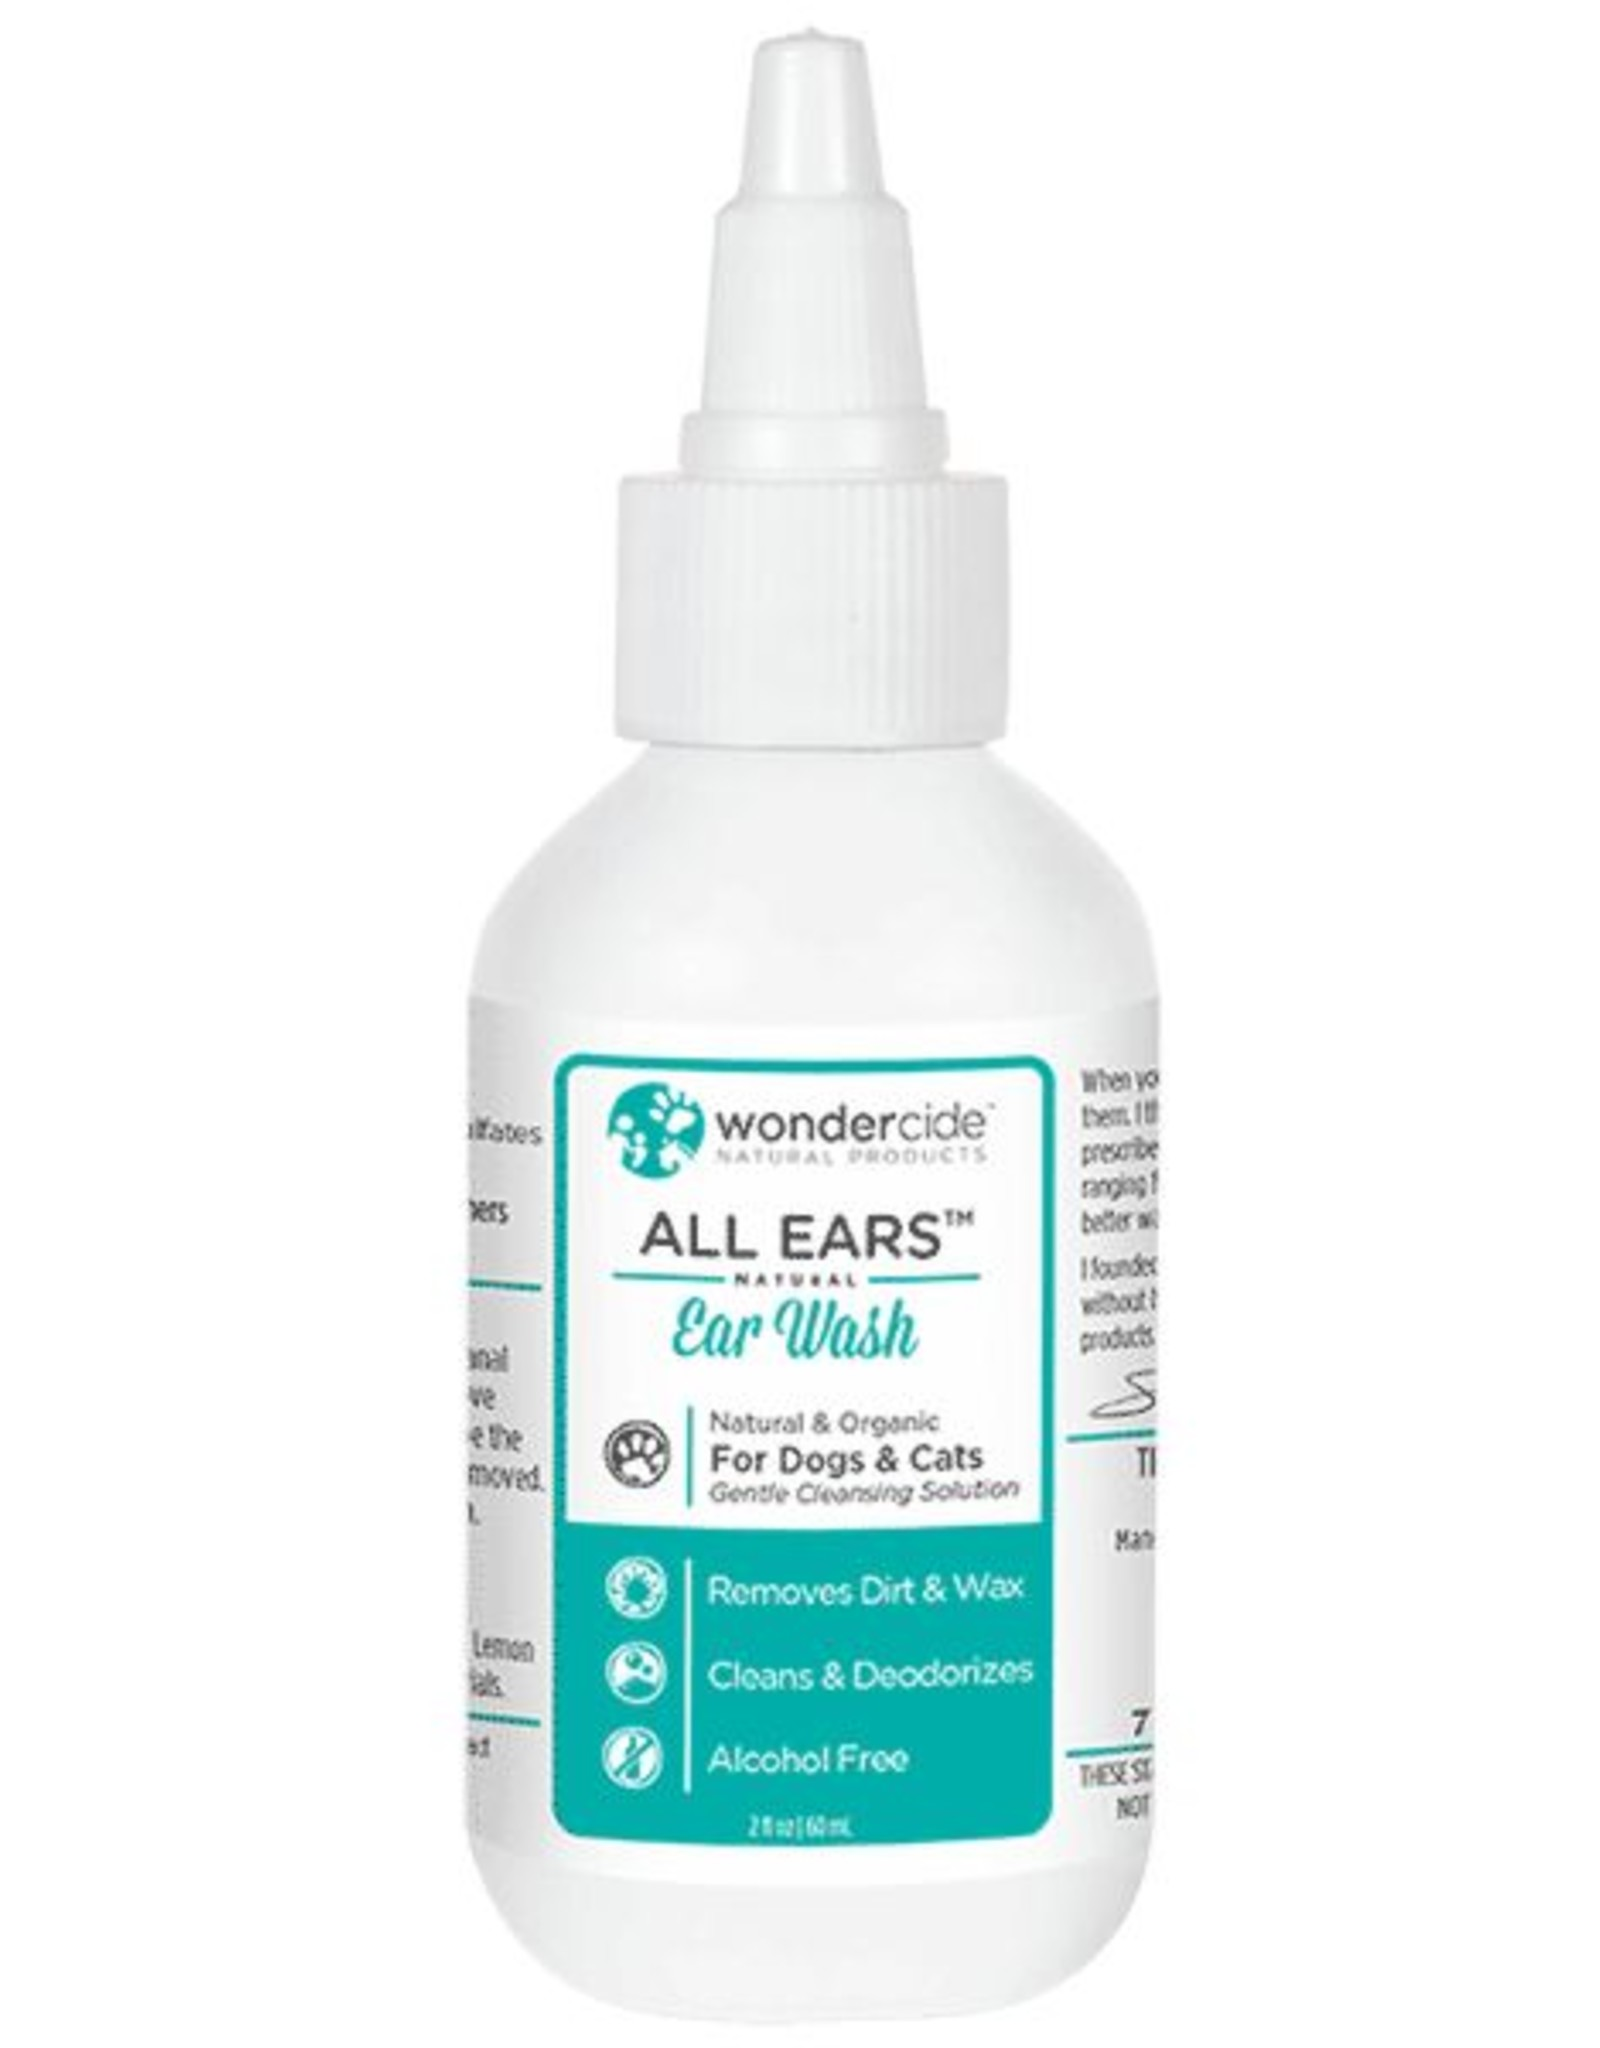 Wondercide Wondercide All Ears Wash 2oz